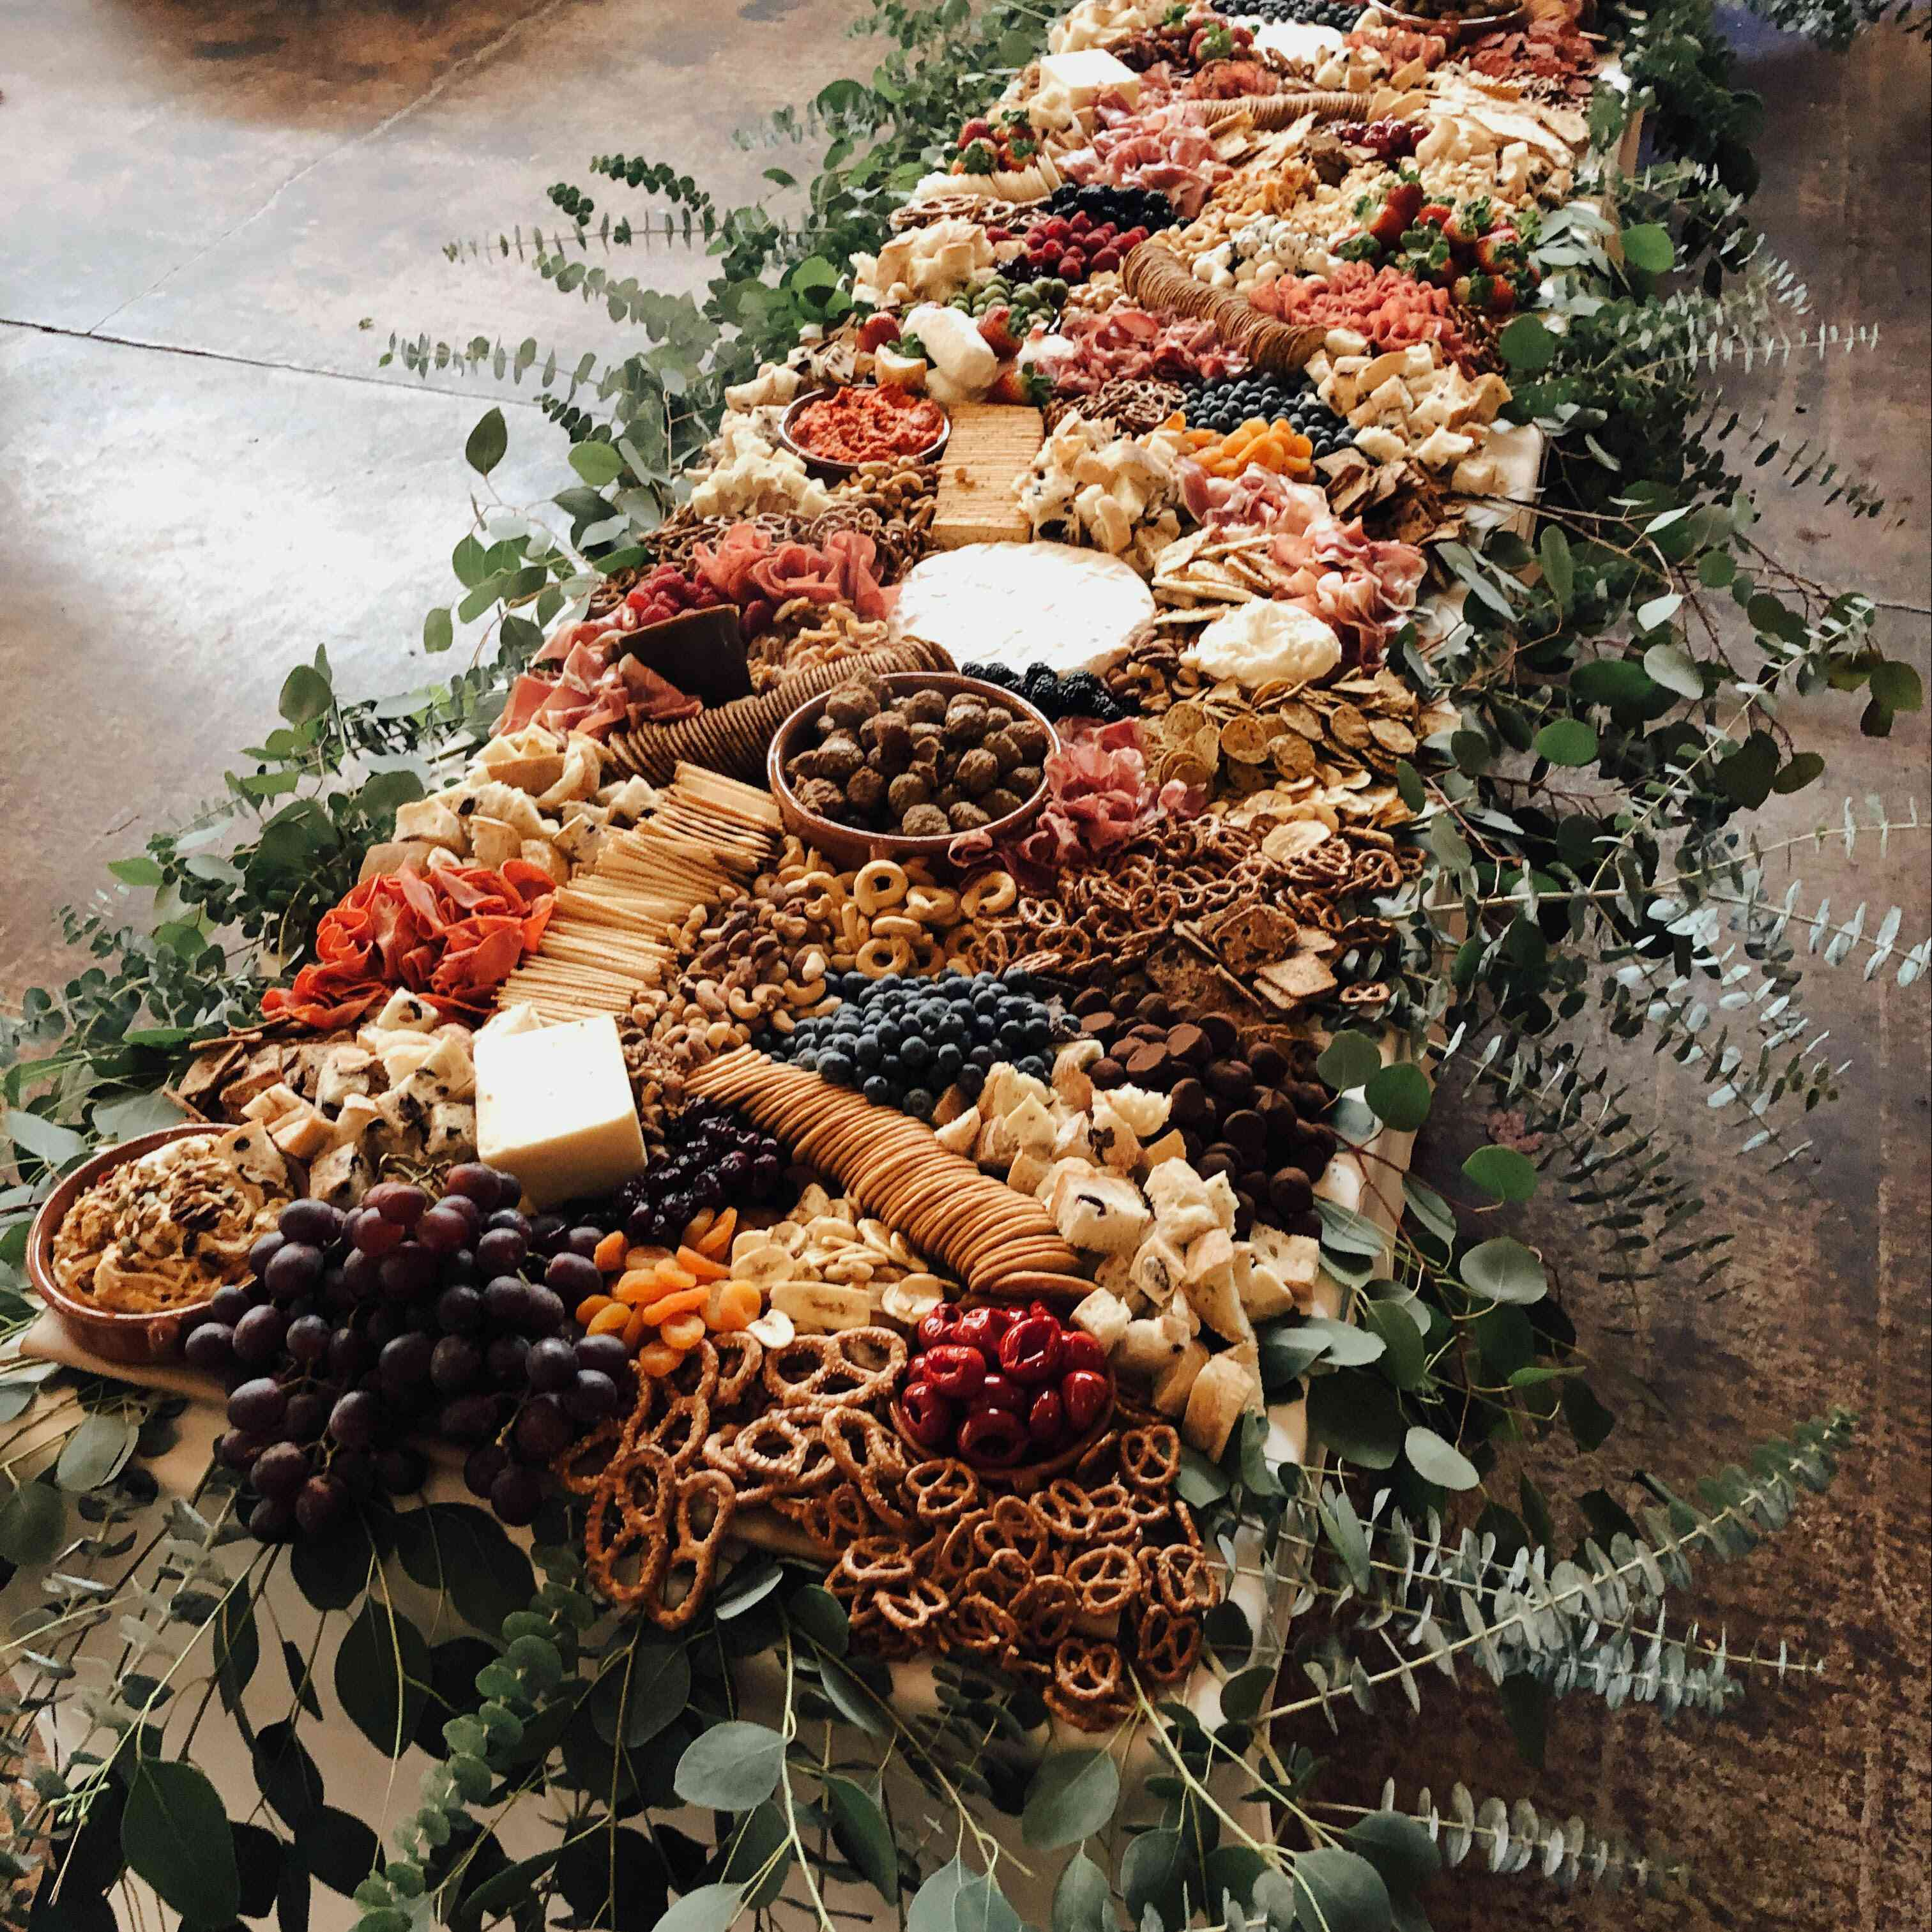 17 Gorgeous Grazing Table Ideas To Whet Your Appetite